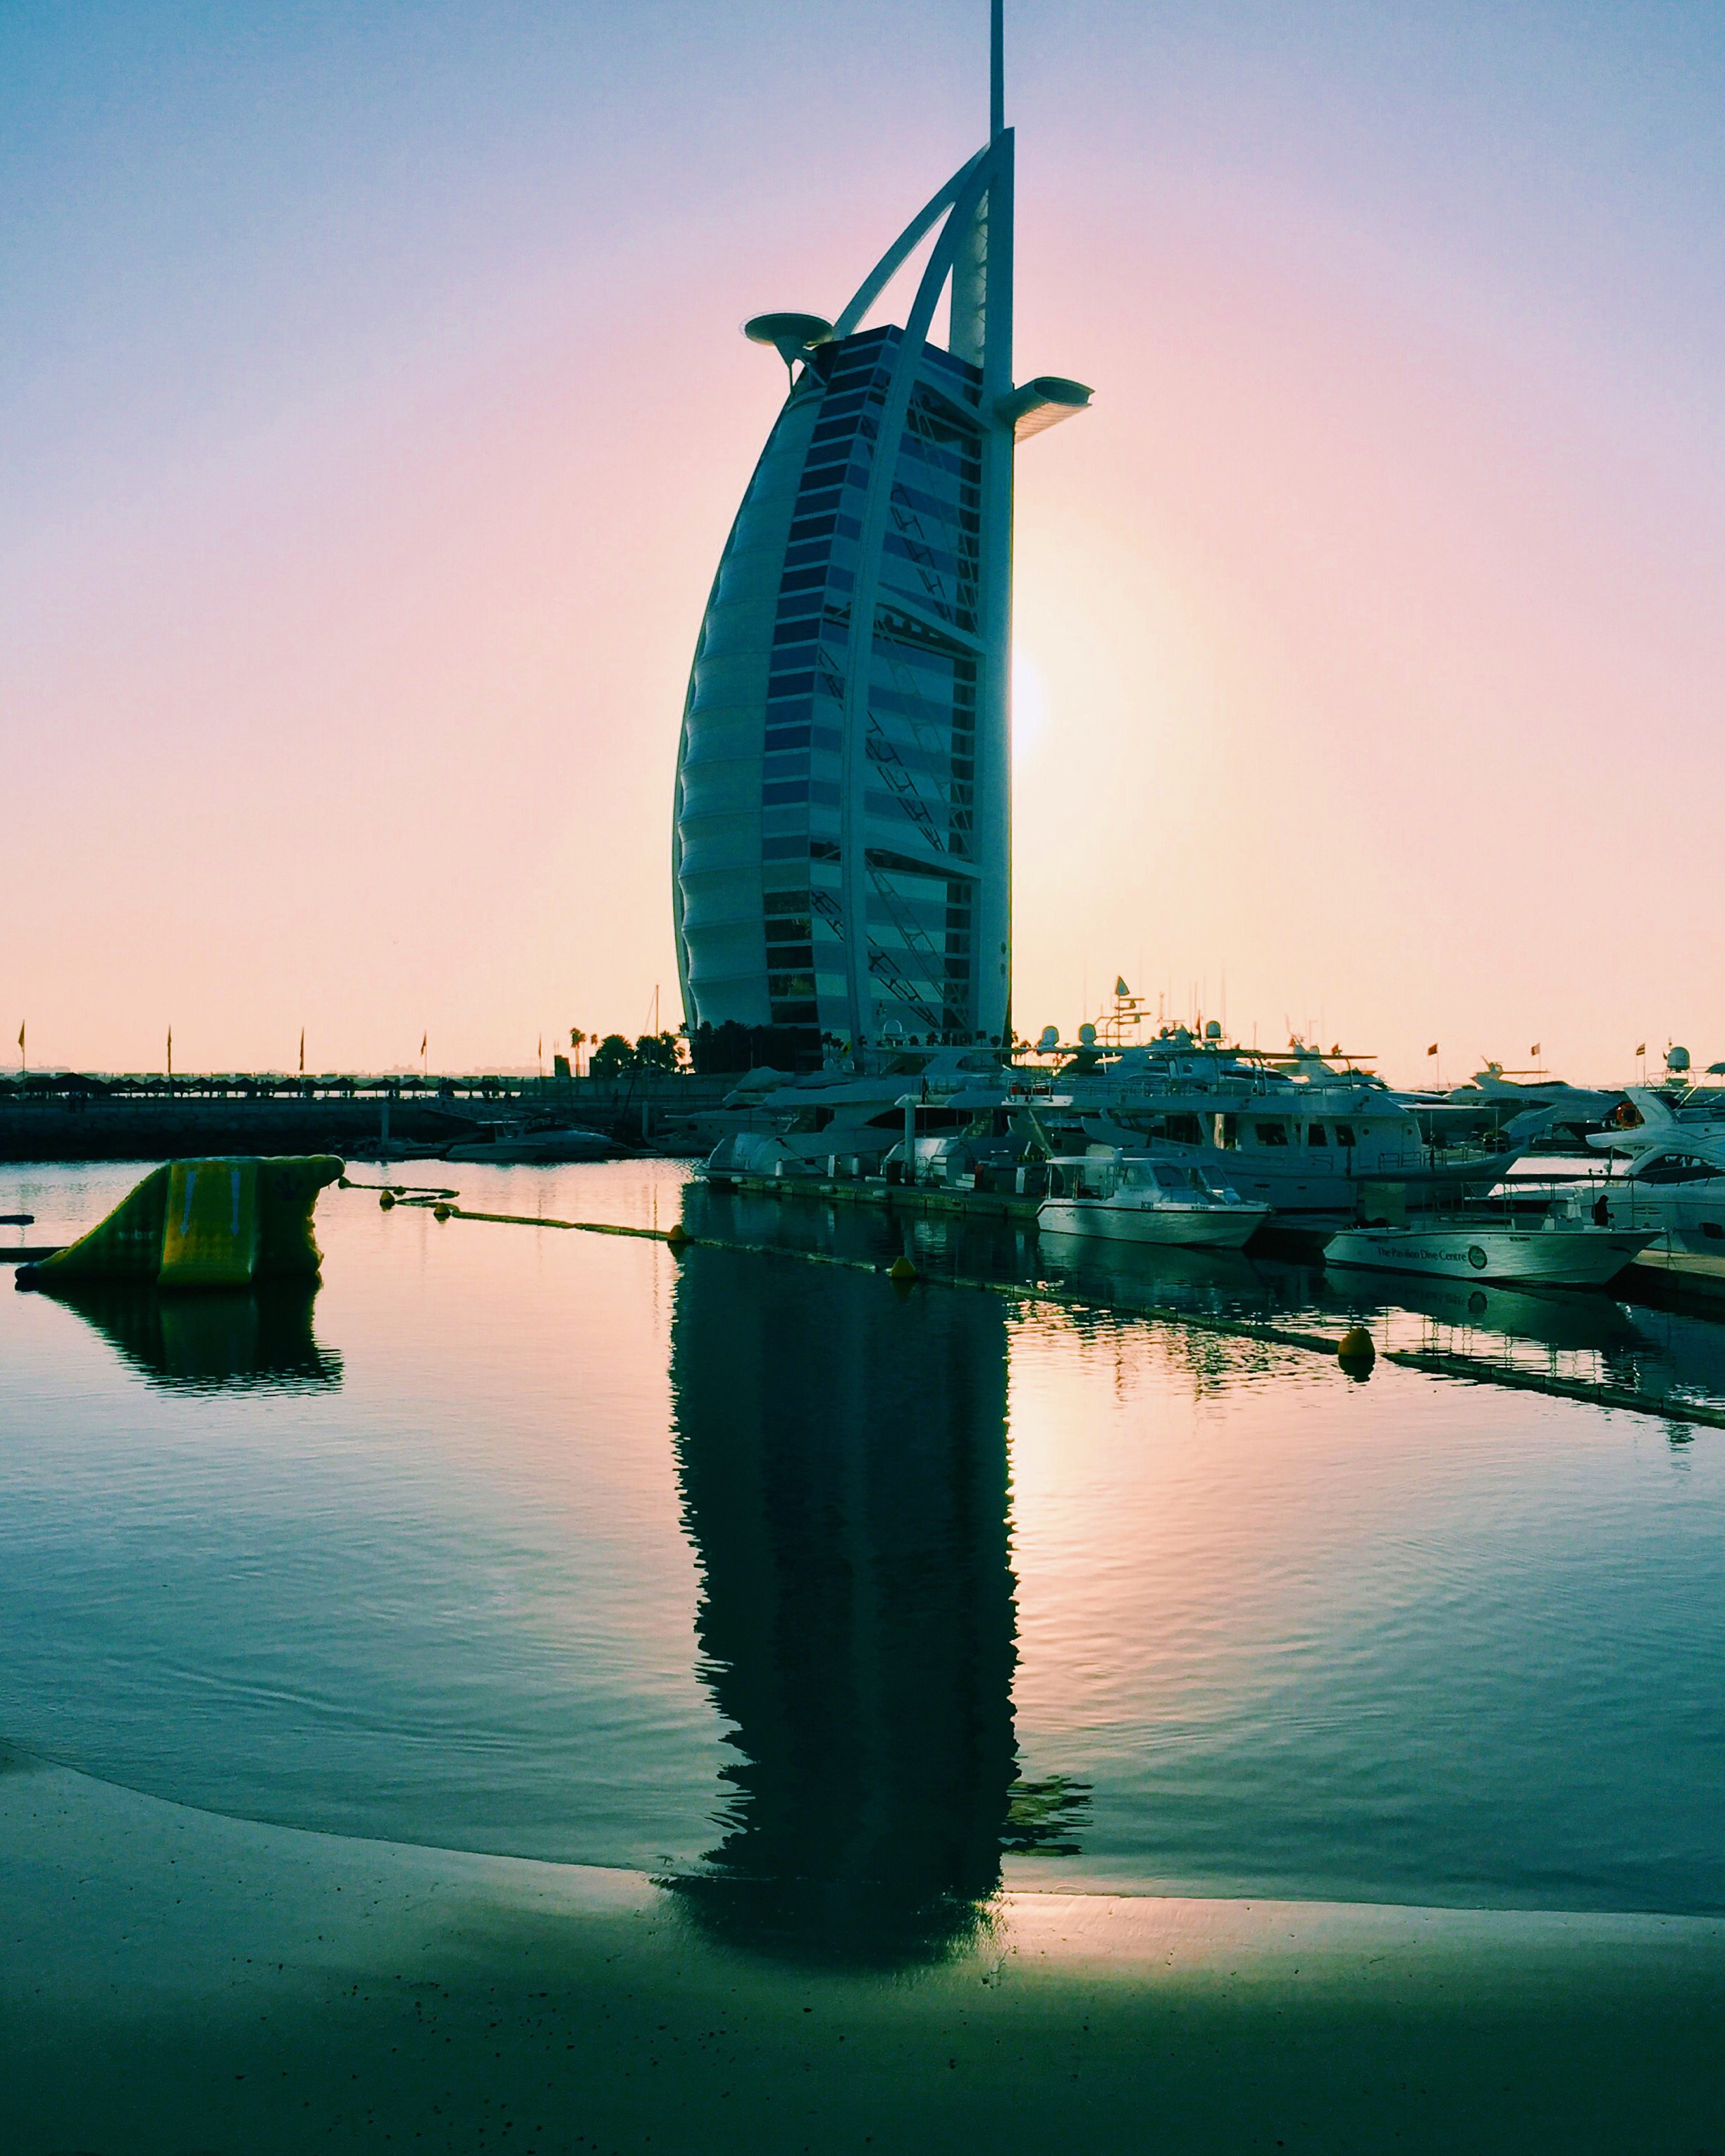 The Burj Al Arab looking stunning and magical at sunset.